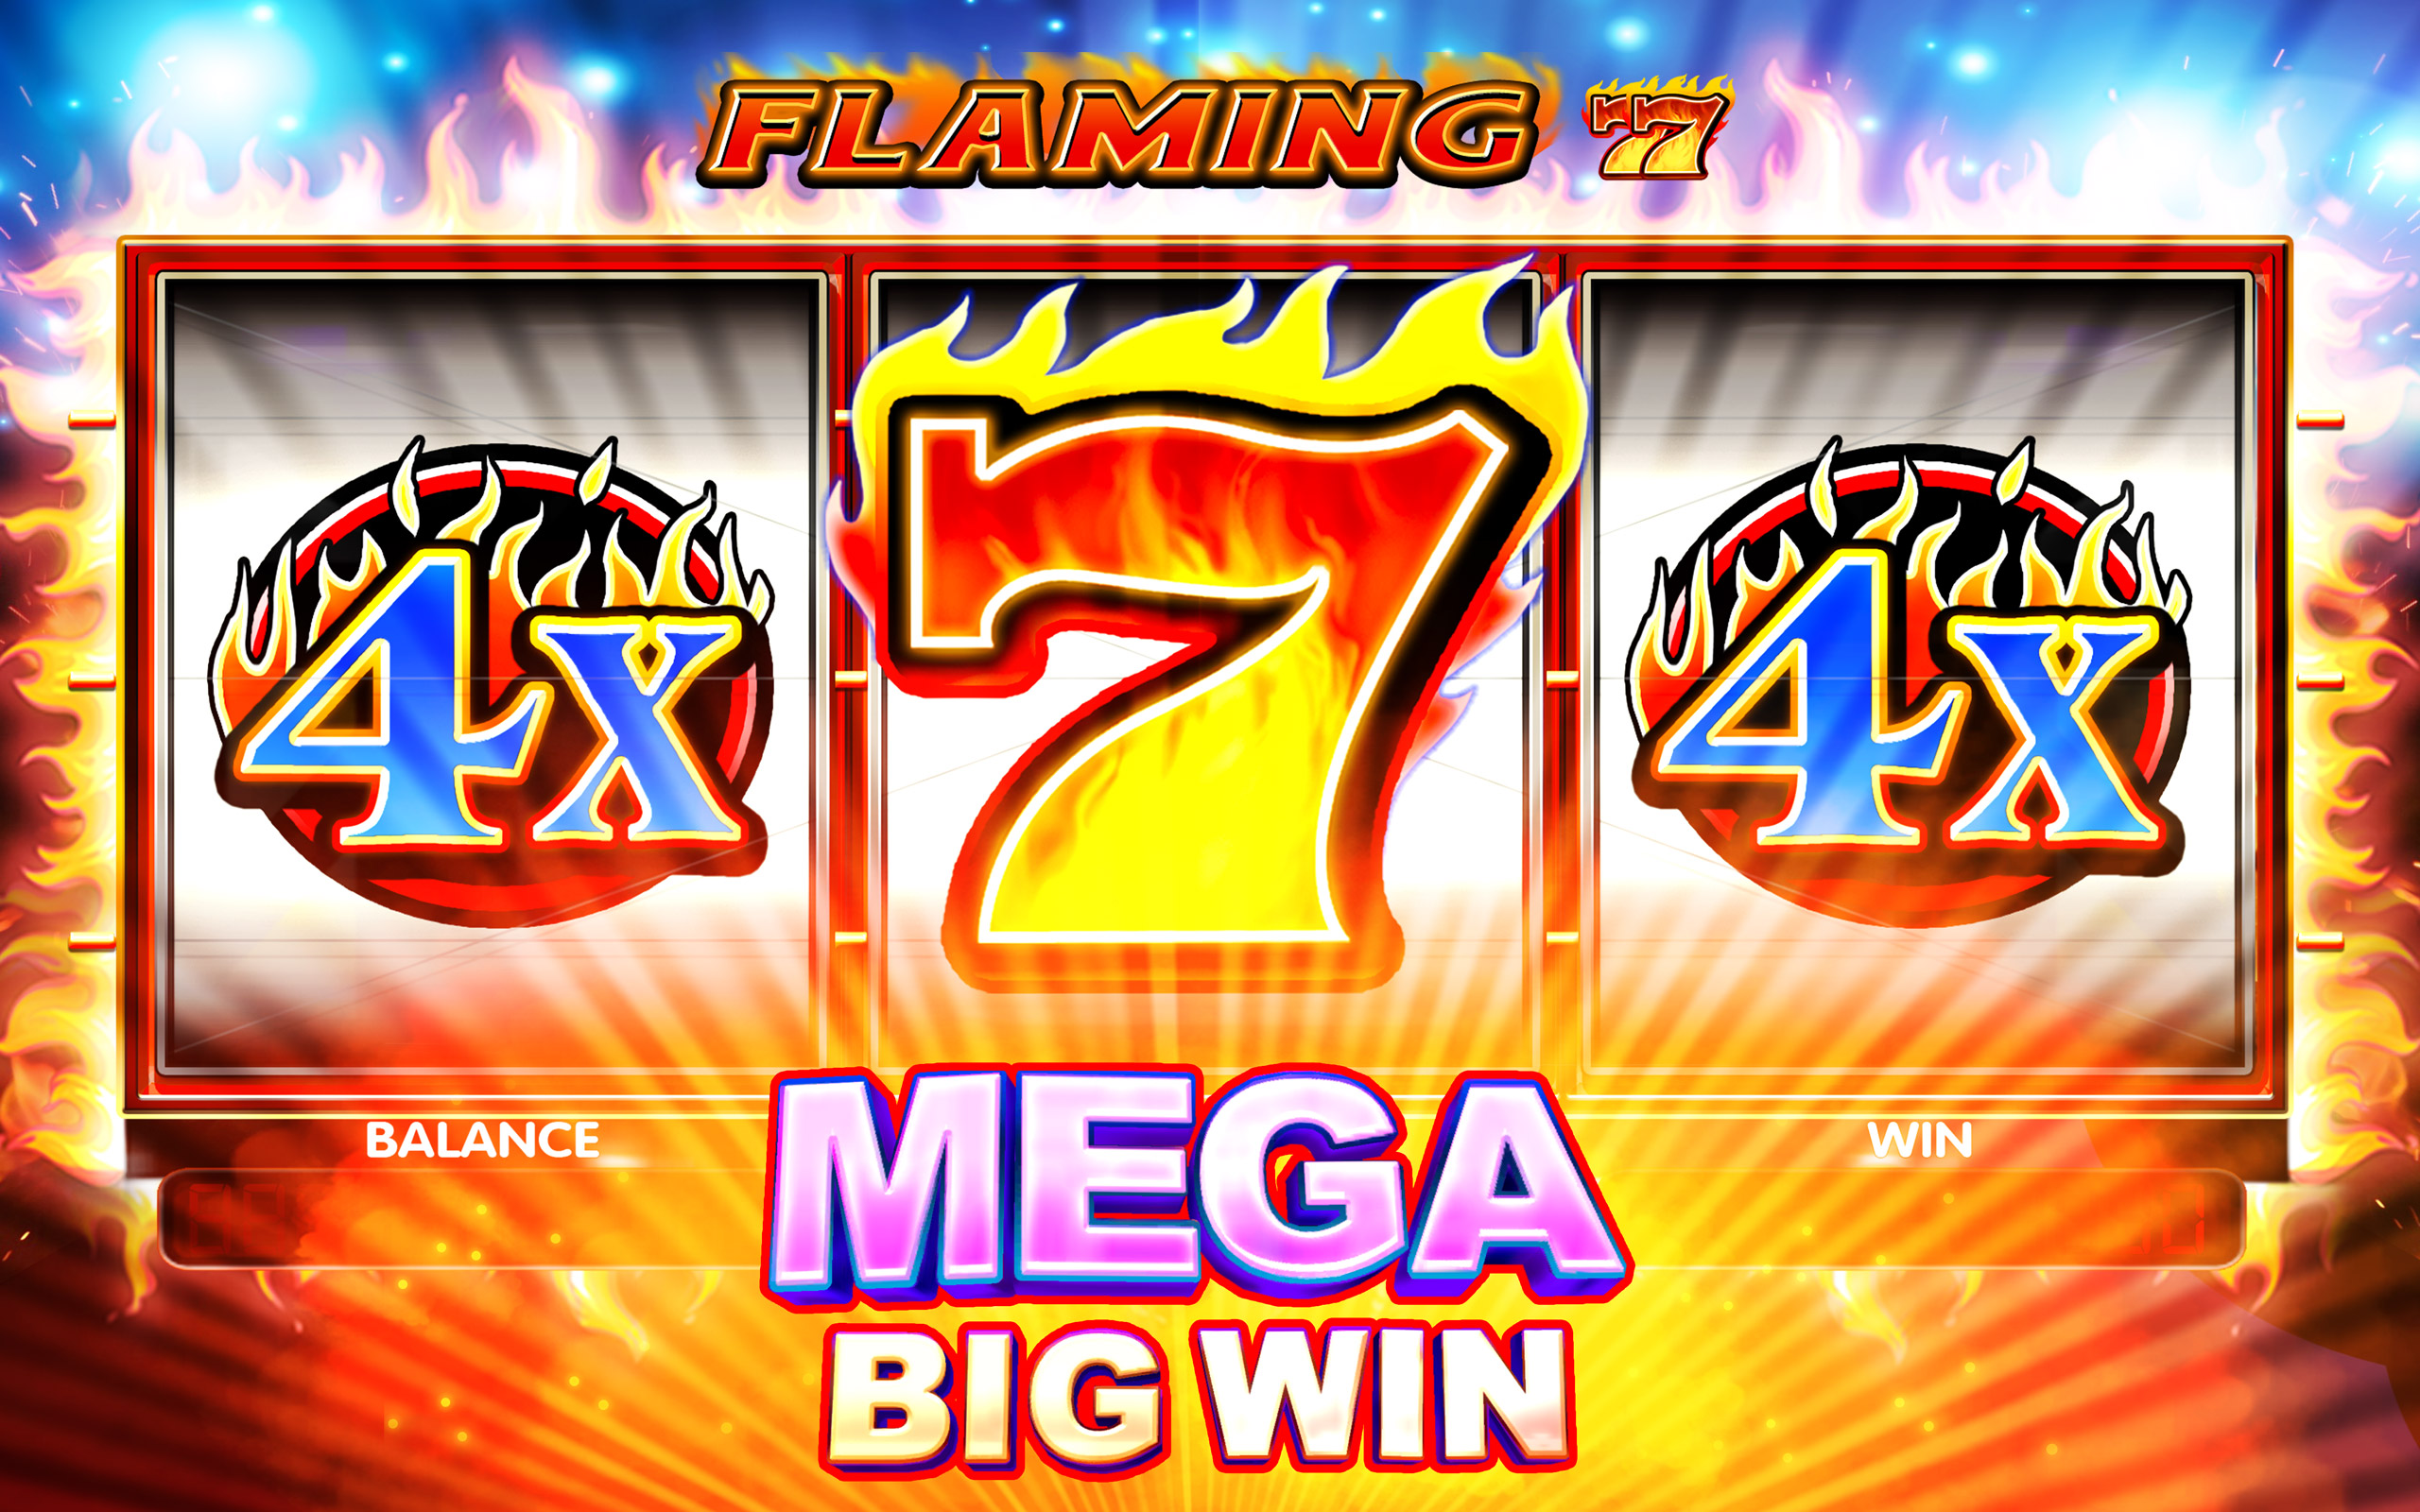 free high 5 casino coins  »  7 Image »  Awesome ..!